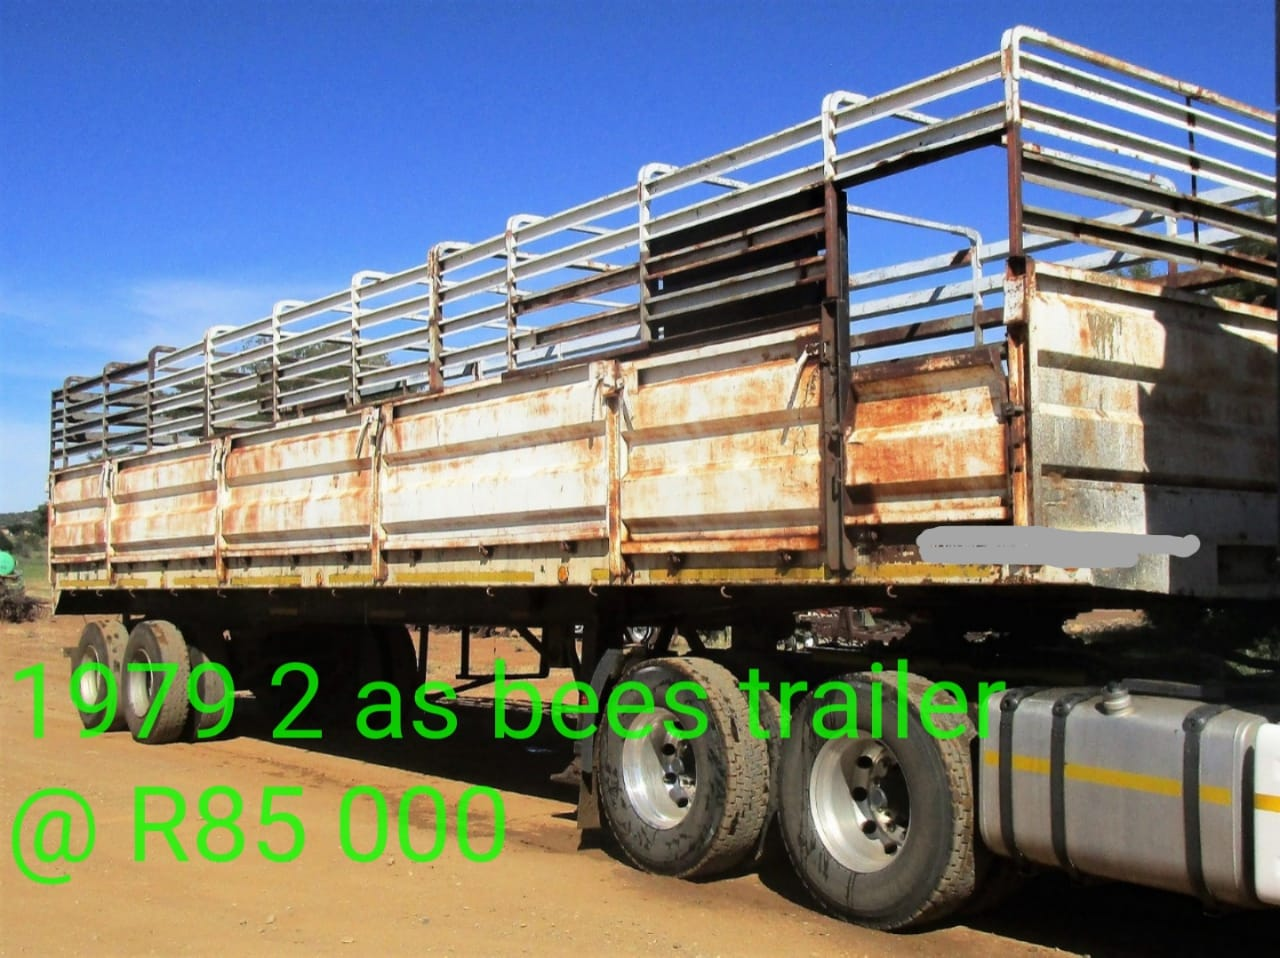 Car Carrier Trailer For Sale In South Africa Junkmail